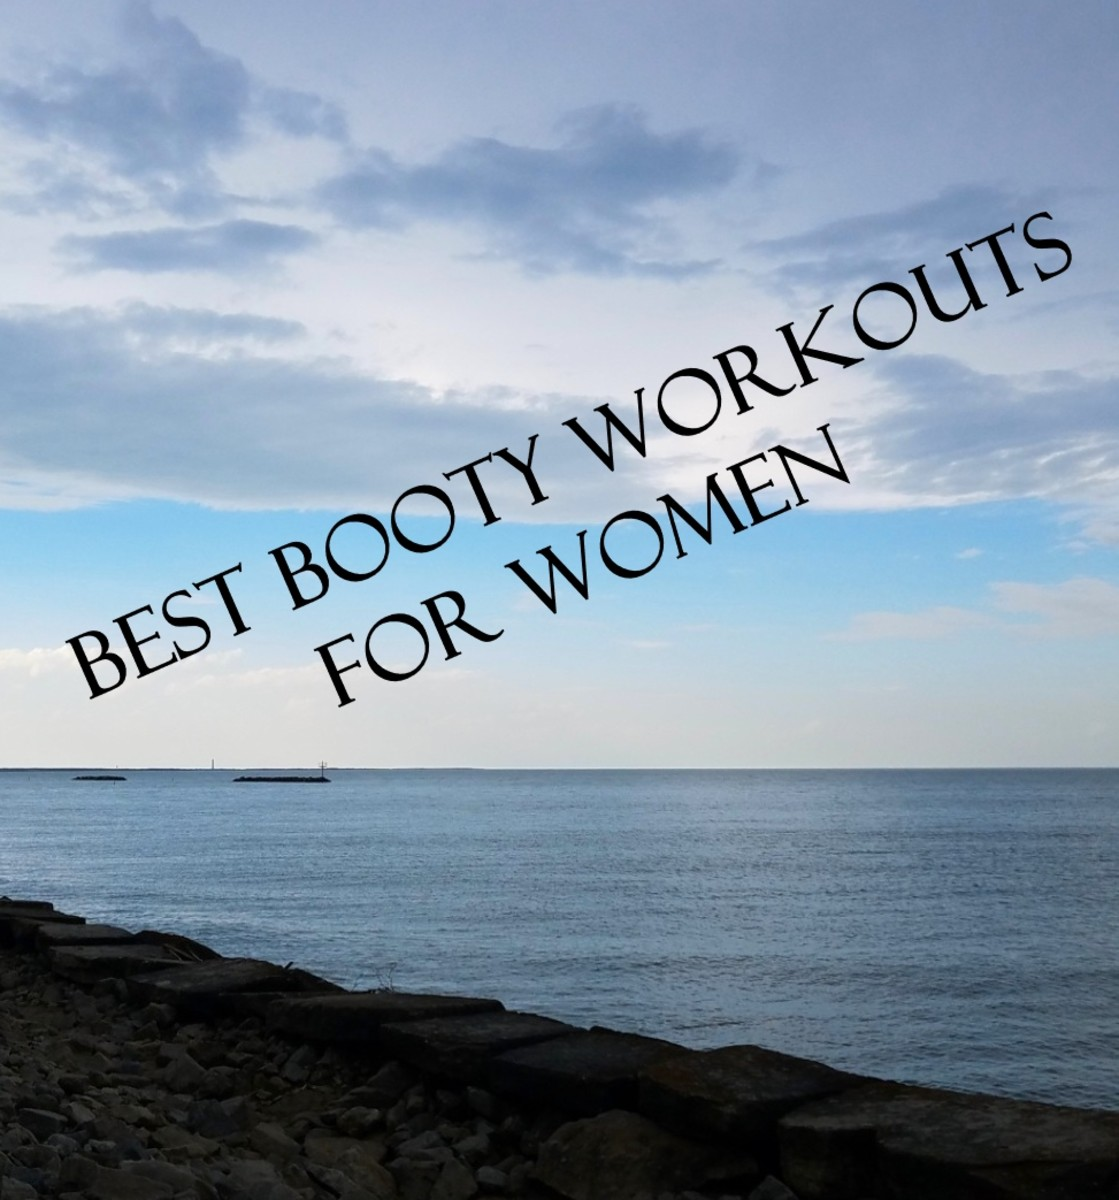 best-booty-workouts-for-women